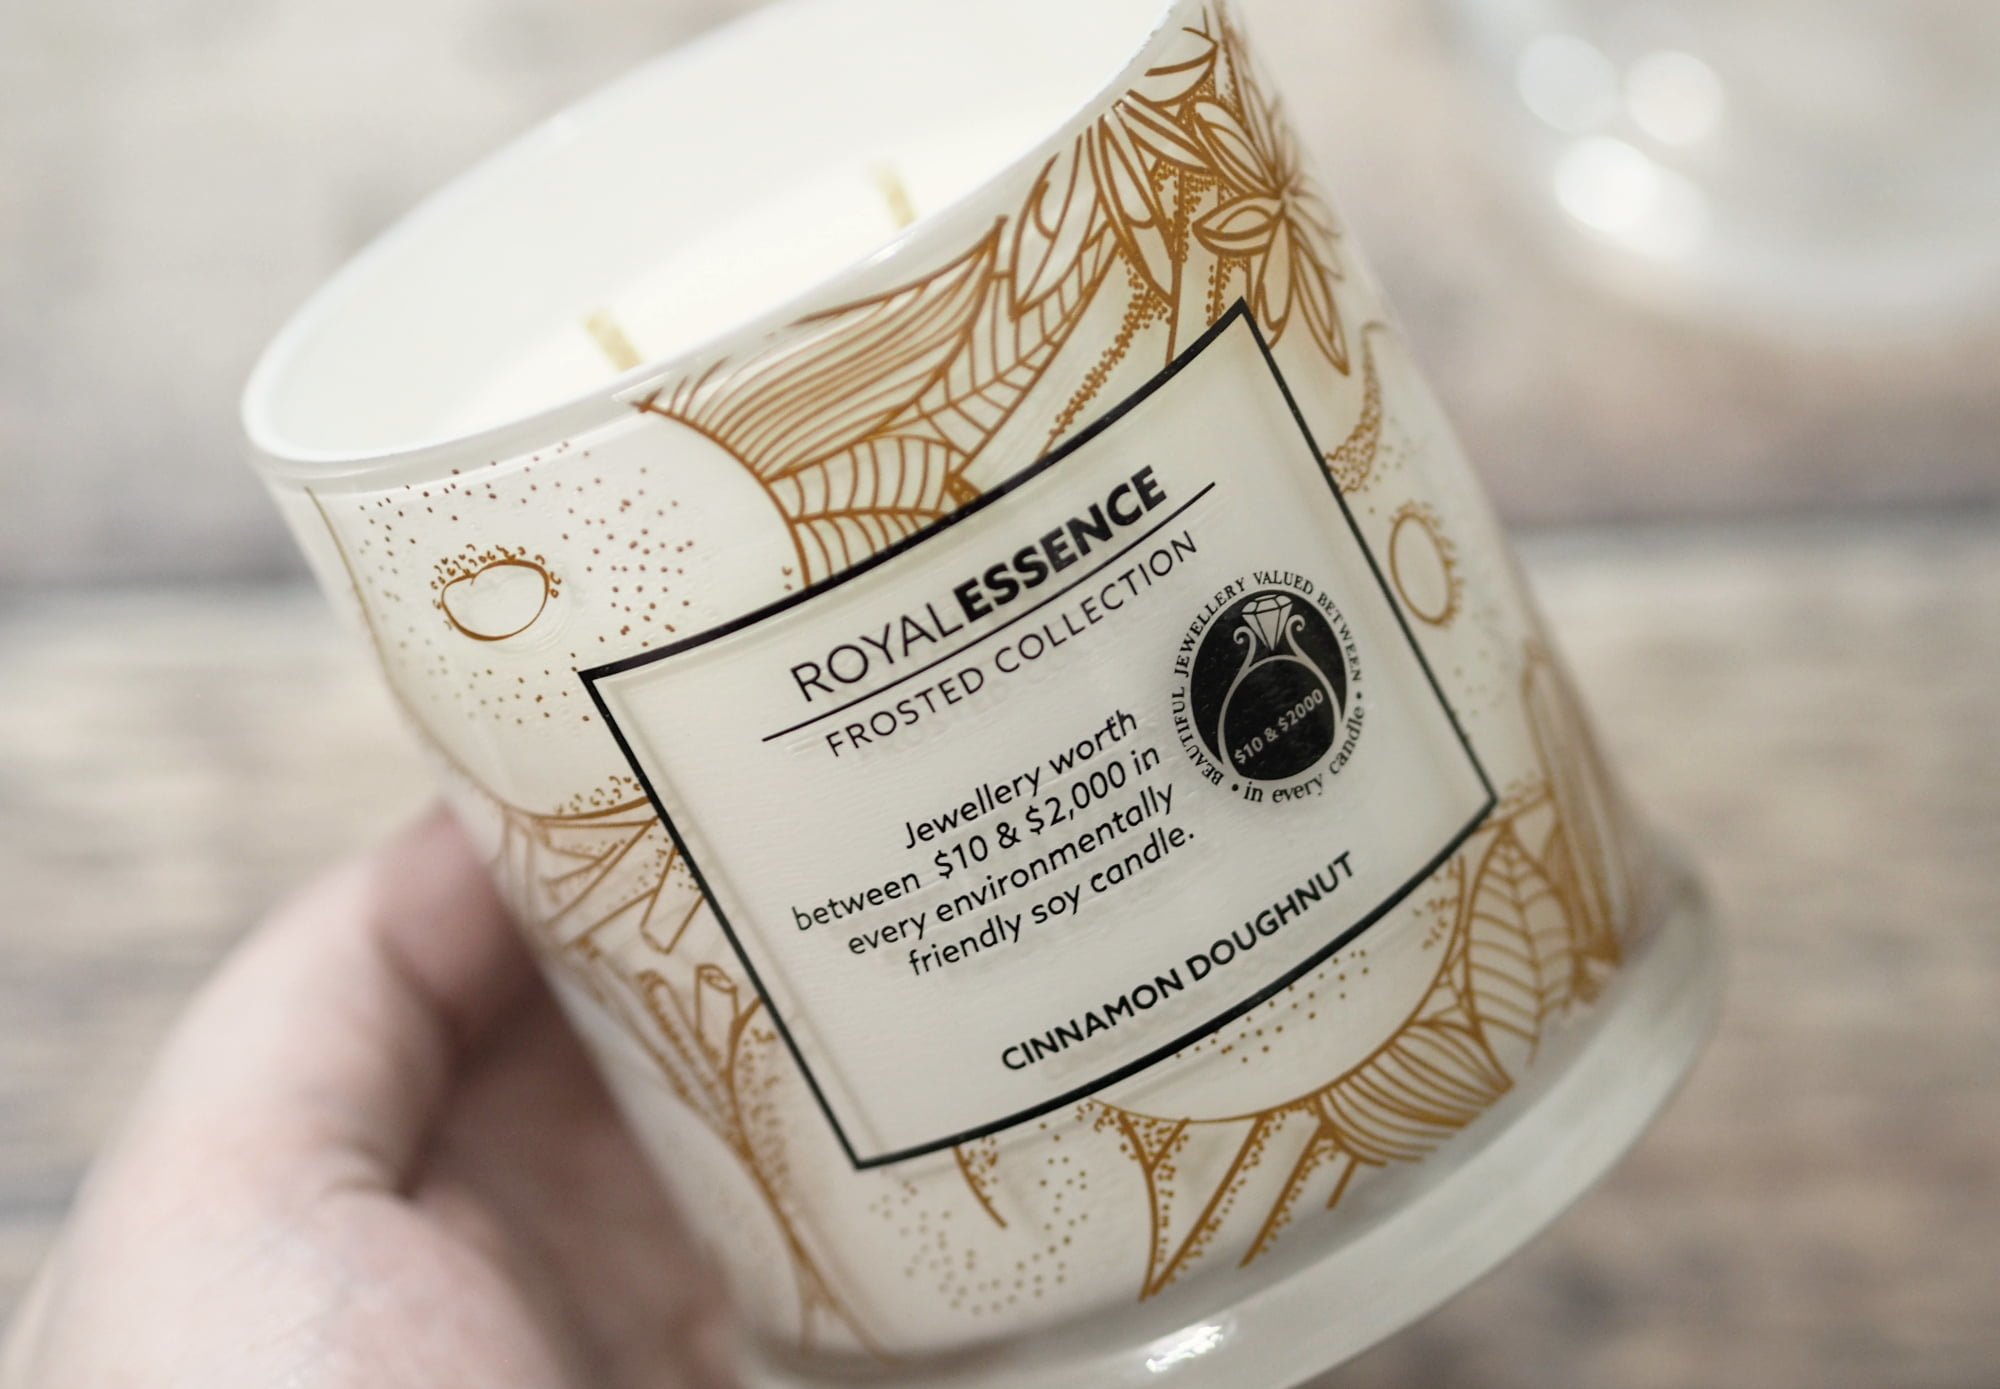 Royal Essence Cinnamon Doughnut Jewellery Candle PLUS GIVEAWAY!